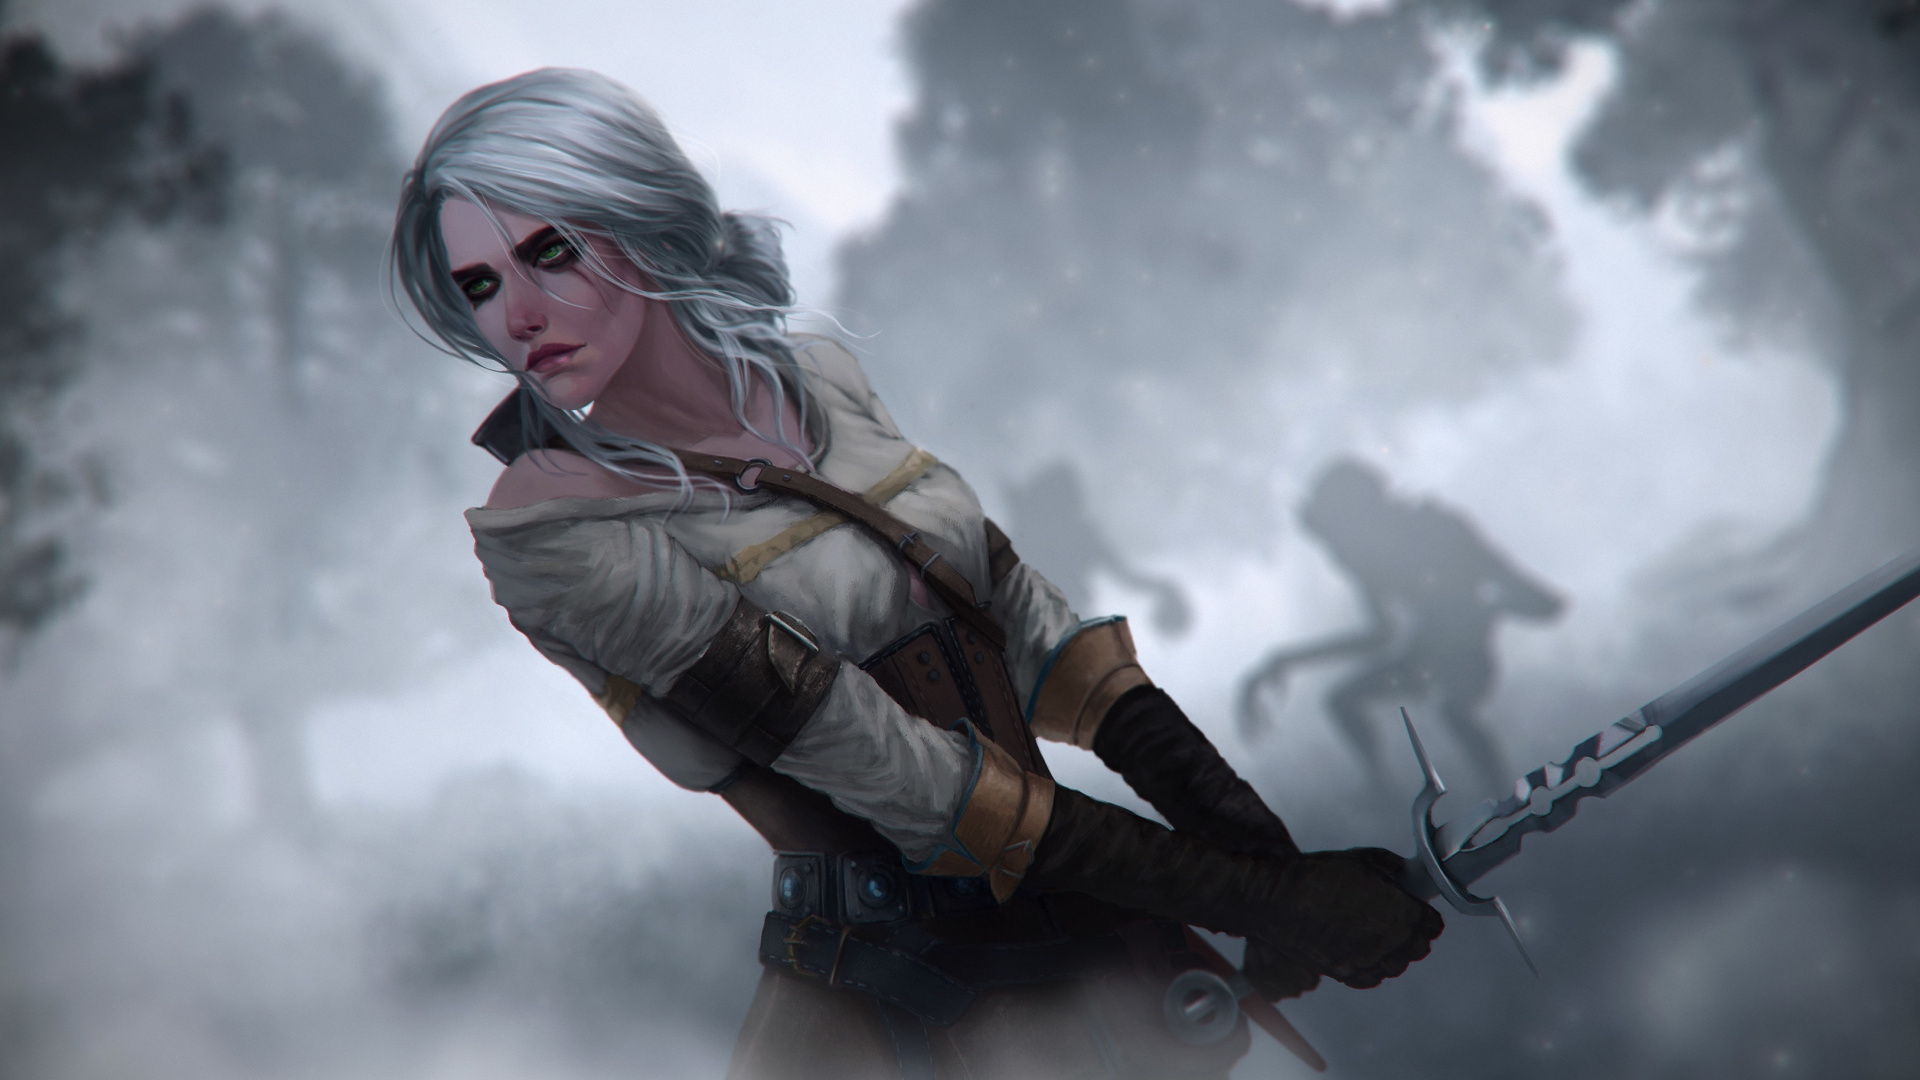 Witcher 3 Wallpaper 1080p Posted By John Tremblay